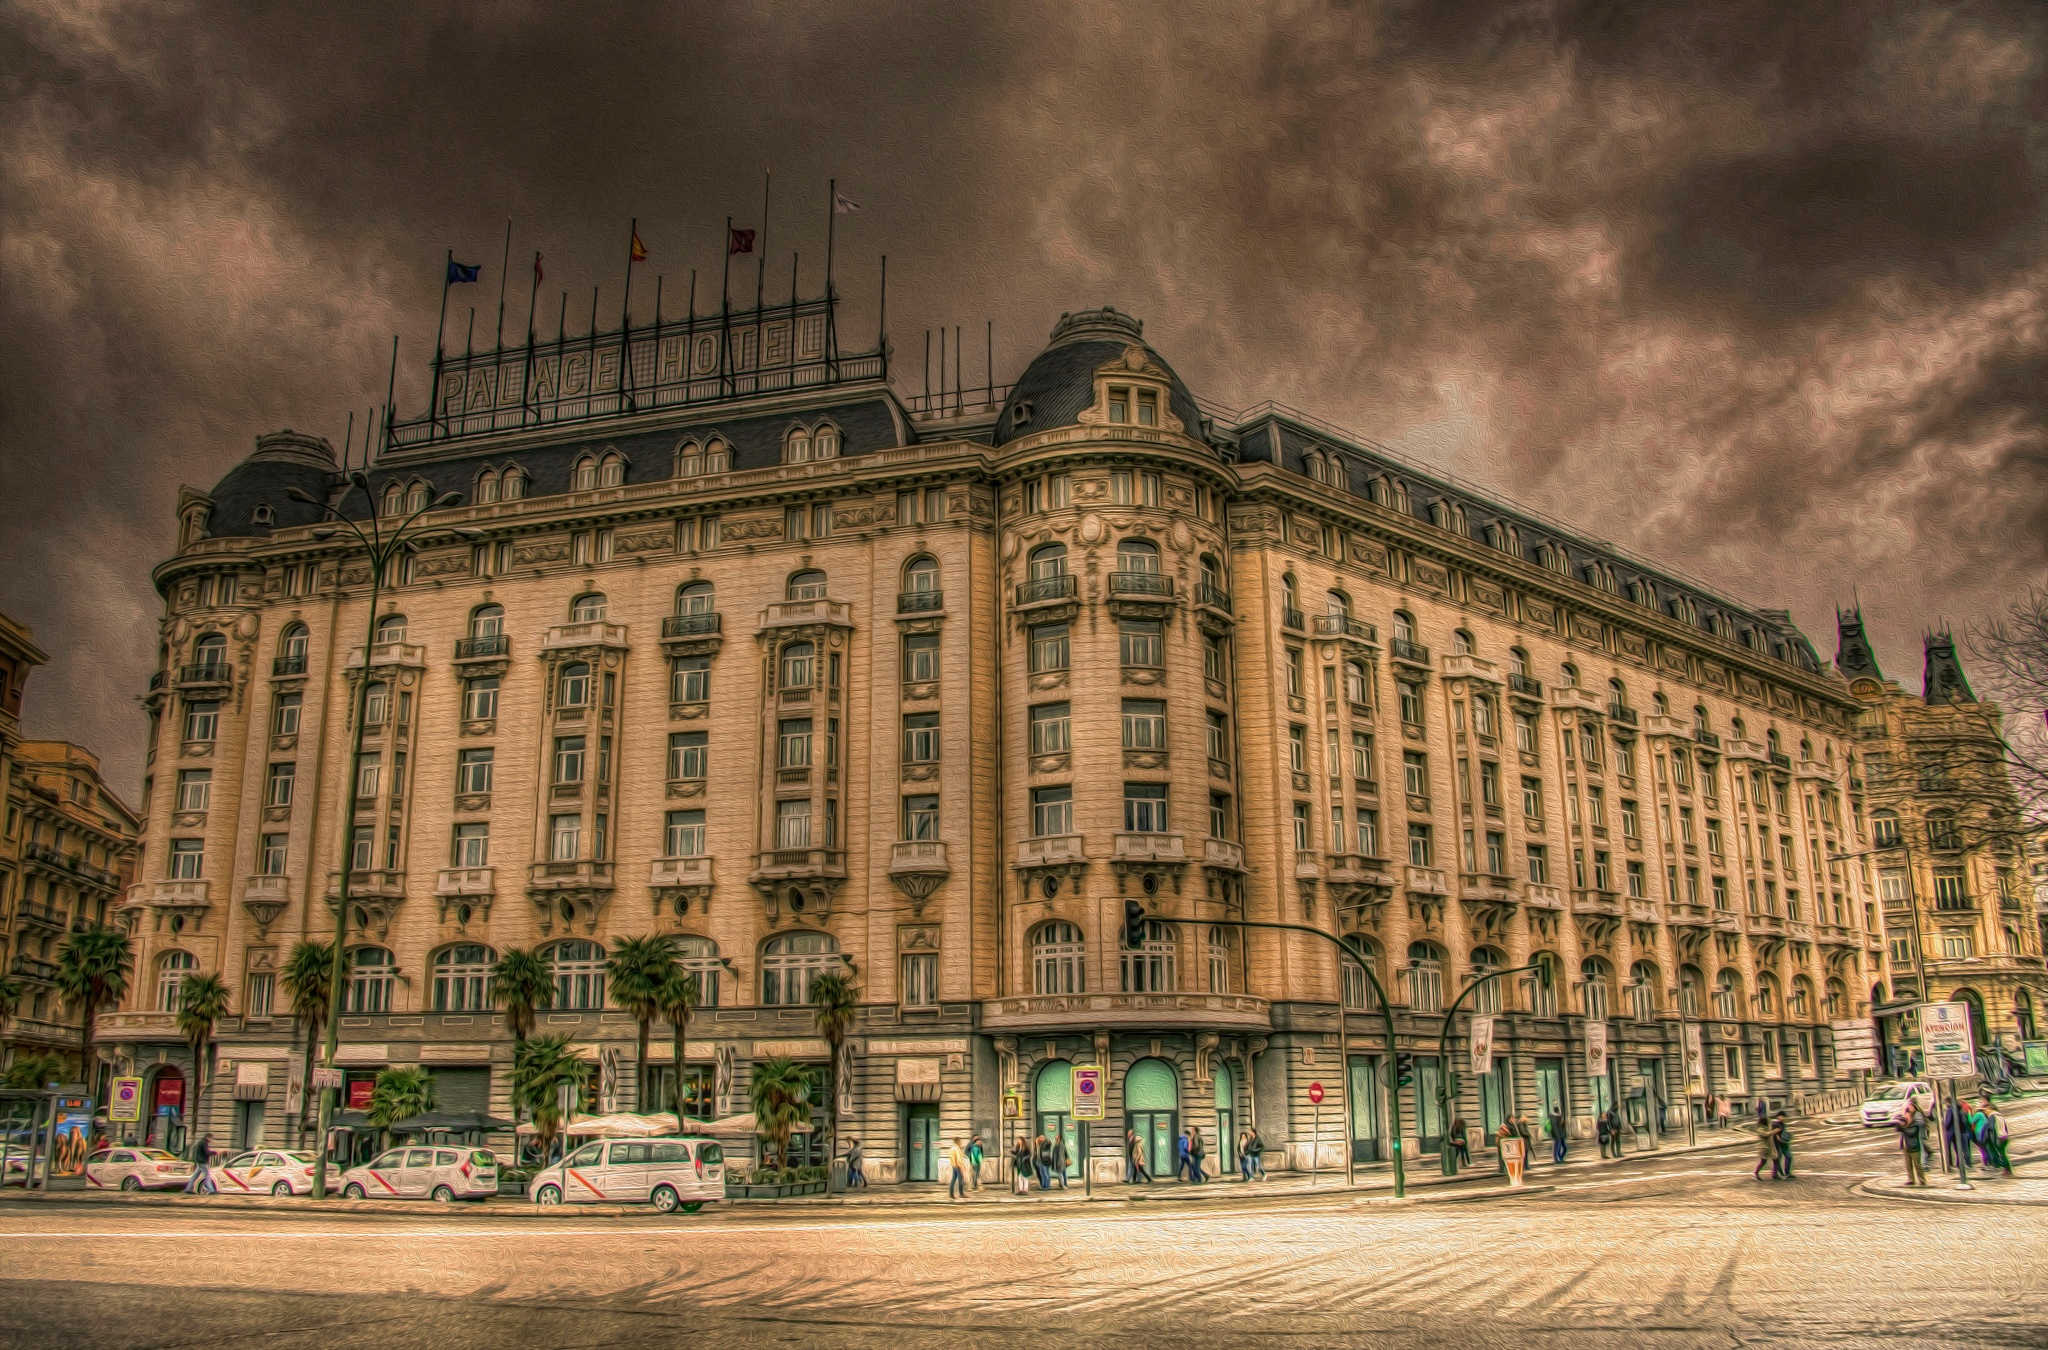 Palace Hotel  by enriquericocorrales1